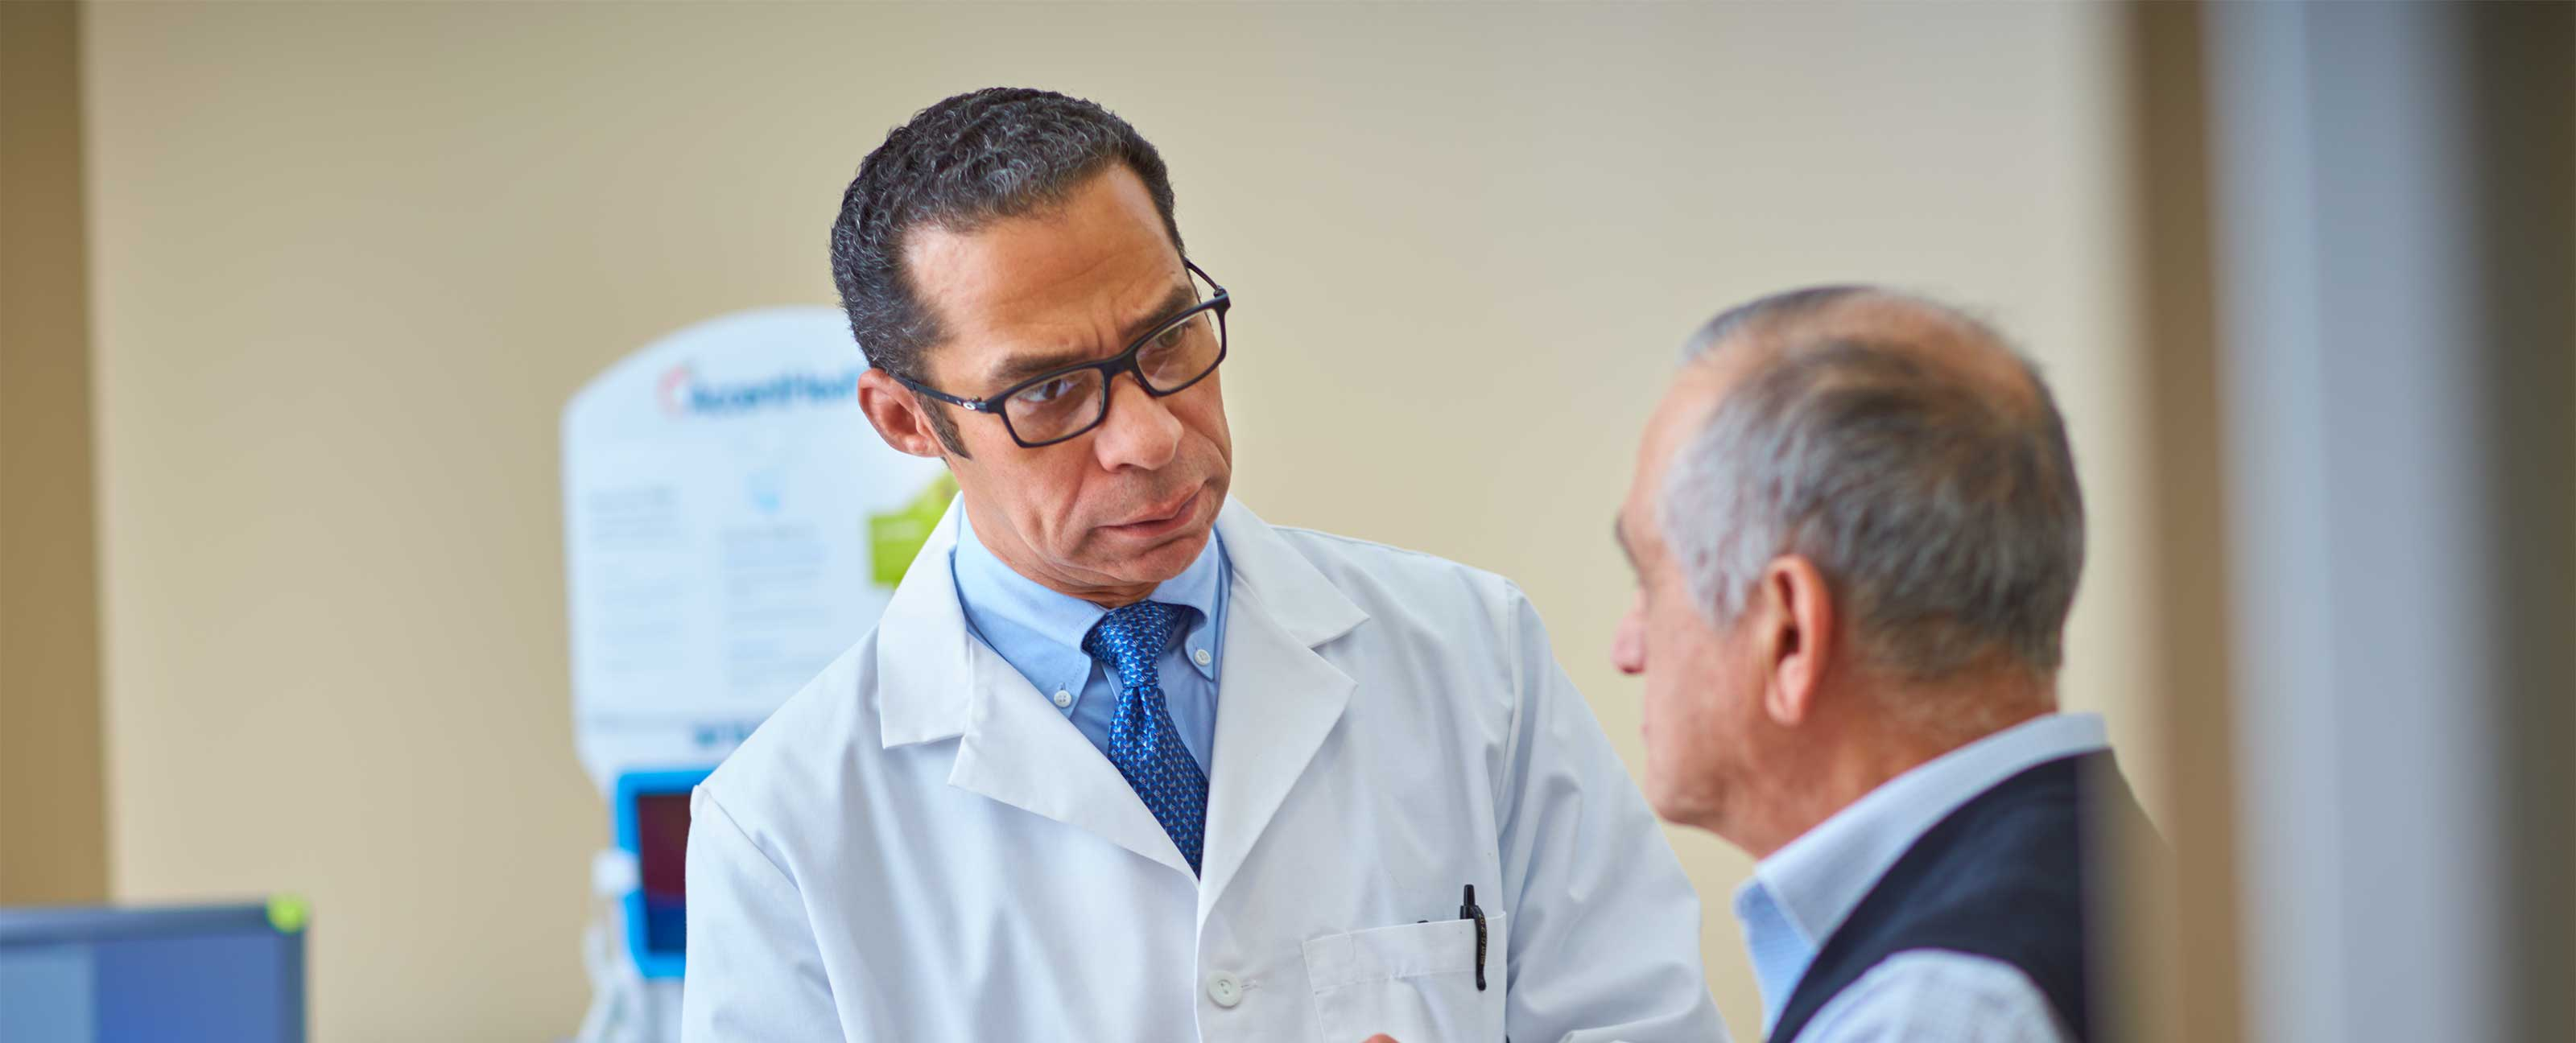 doctor talking to elderly male patient in exam room